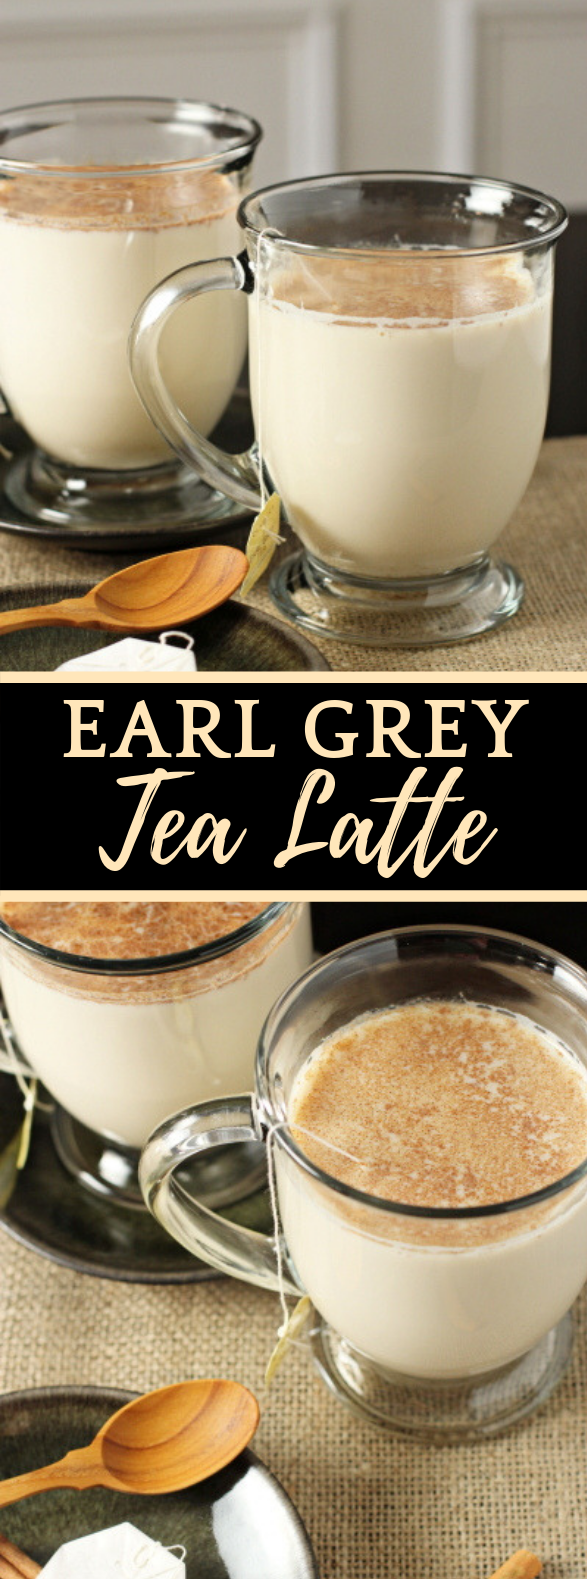 EARL GREY TEA LATTE #drink #coffee